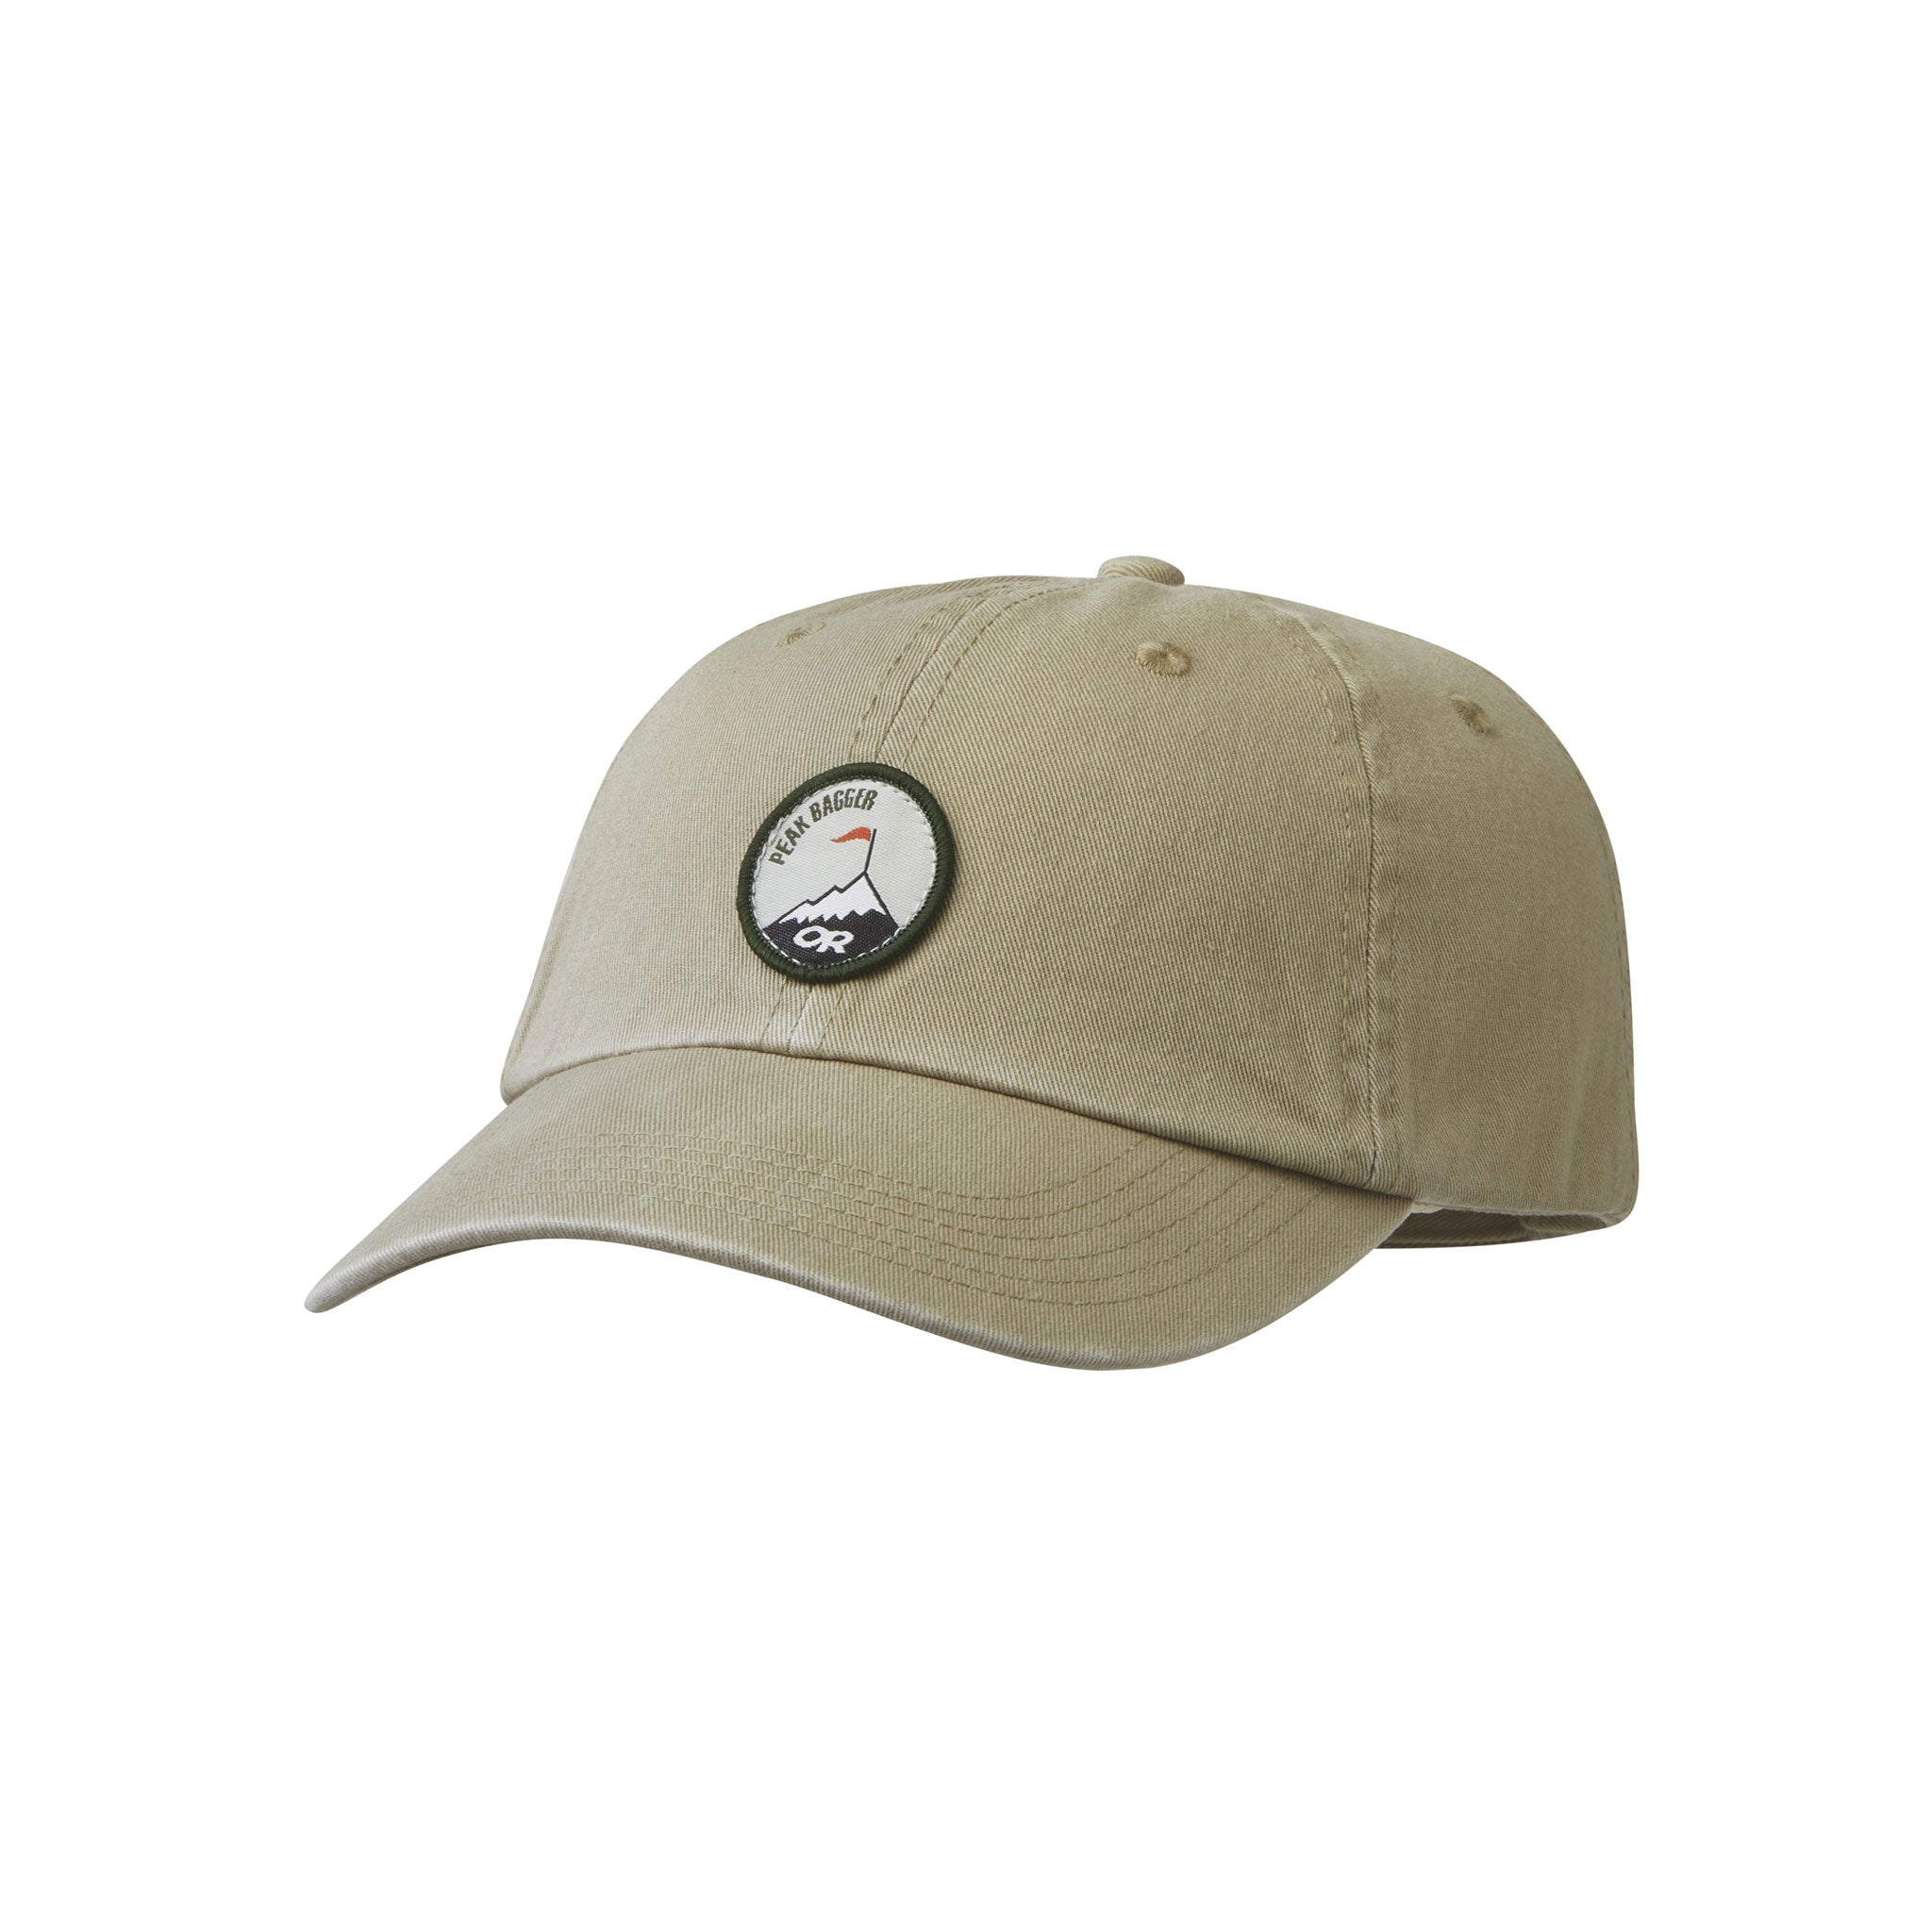 2324ddb9488ce Women s Caps - Alpine Start Outfitters